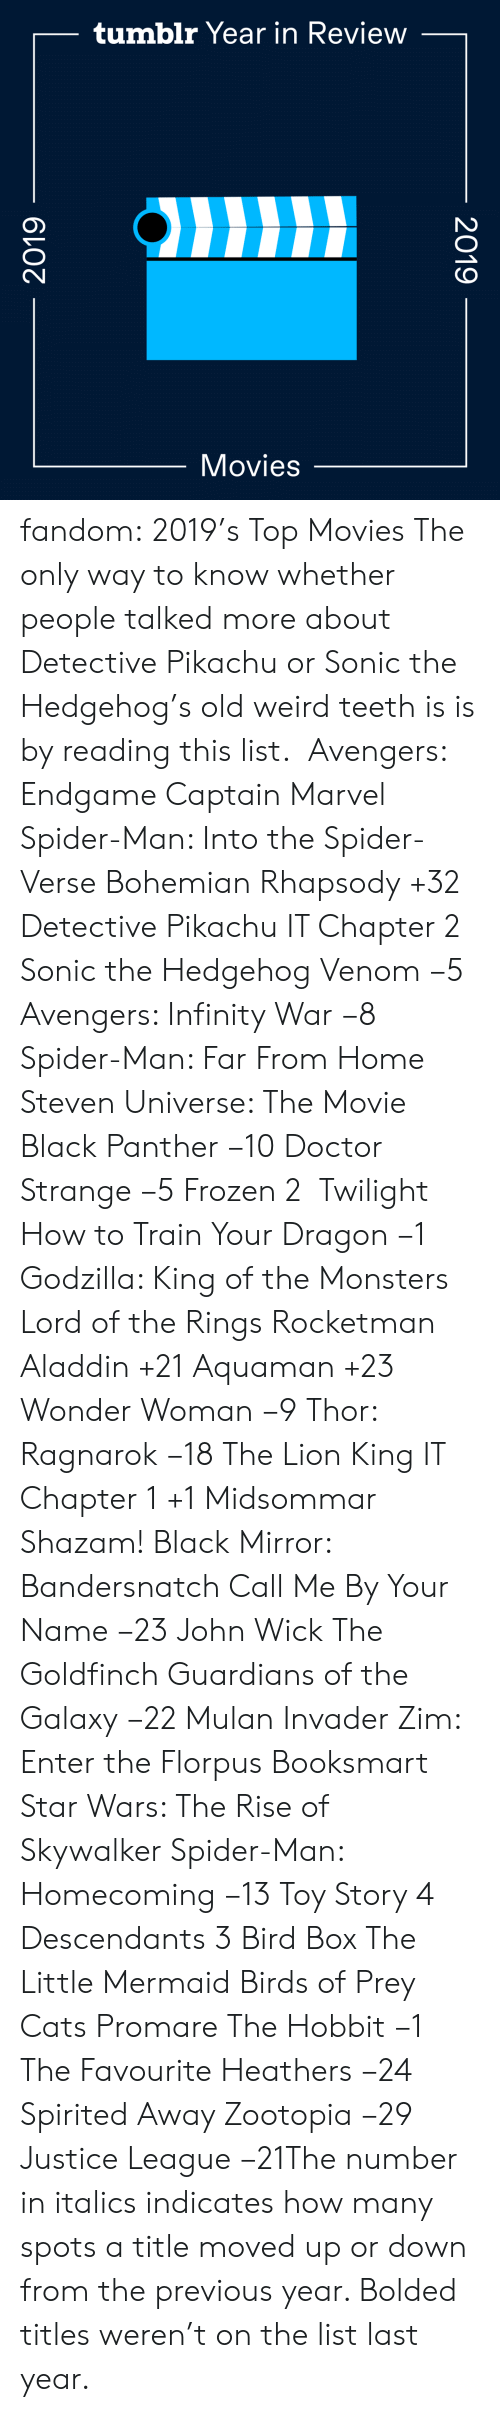 Black Panther: tumblr Year in Review  Movies  2019  2019 fandom:  2019's Top Movies  The only way to know whether people talked more about Detective Pikachu or Sonic the Hedgehog's old weird teeth is is by reading this list.   Avengers: Endgame  Captain Marvel  Spider-Man: Into the Spider-Verse  Bohemian Rhapsody +32  Detective Pikachu  IT Chapter 2  Sonic the Hedgehog  Venom −5  Avengers: Infinity War −8  Spider-Man: Far From Home  Steven Universe: The Movie  Black Panther −10  Doctor Strange −5  Frozen 2   Twilight  How to Train Your Dragon −1  Godzilla: King of the Monsters  Lord of the Rings  Rocketman  Aladdin +21  Aquaman +23  Wonder Woman −9  Thor: Ragnarok −18  The Lion King  IT Chapter 1 +1  Midsommar  Shazam!  Black Mirror: Bandersnatch  Call Me By Your Name −23  John Wick  The Goldfinch  Guardians of the Galaxy −22  Mulan  Invader Zim: Enter the Florpus  Booksmart  Star Wars: The Rise of Skywalker  Spider-Man: Homecoming −13  Toy Story 4  Descendants 3  Bird Box  The Little Mermaid  Birds of Prey  Cats  Promare  The Hobbit −1  The Favourite  Heathers −24  Spirited Away  Zootopia −29 Justice League −21The number in italics indicates how many spots a title moved up or down from the previous year. Bolded titles weren't on the list last year.